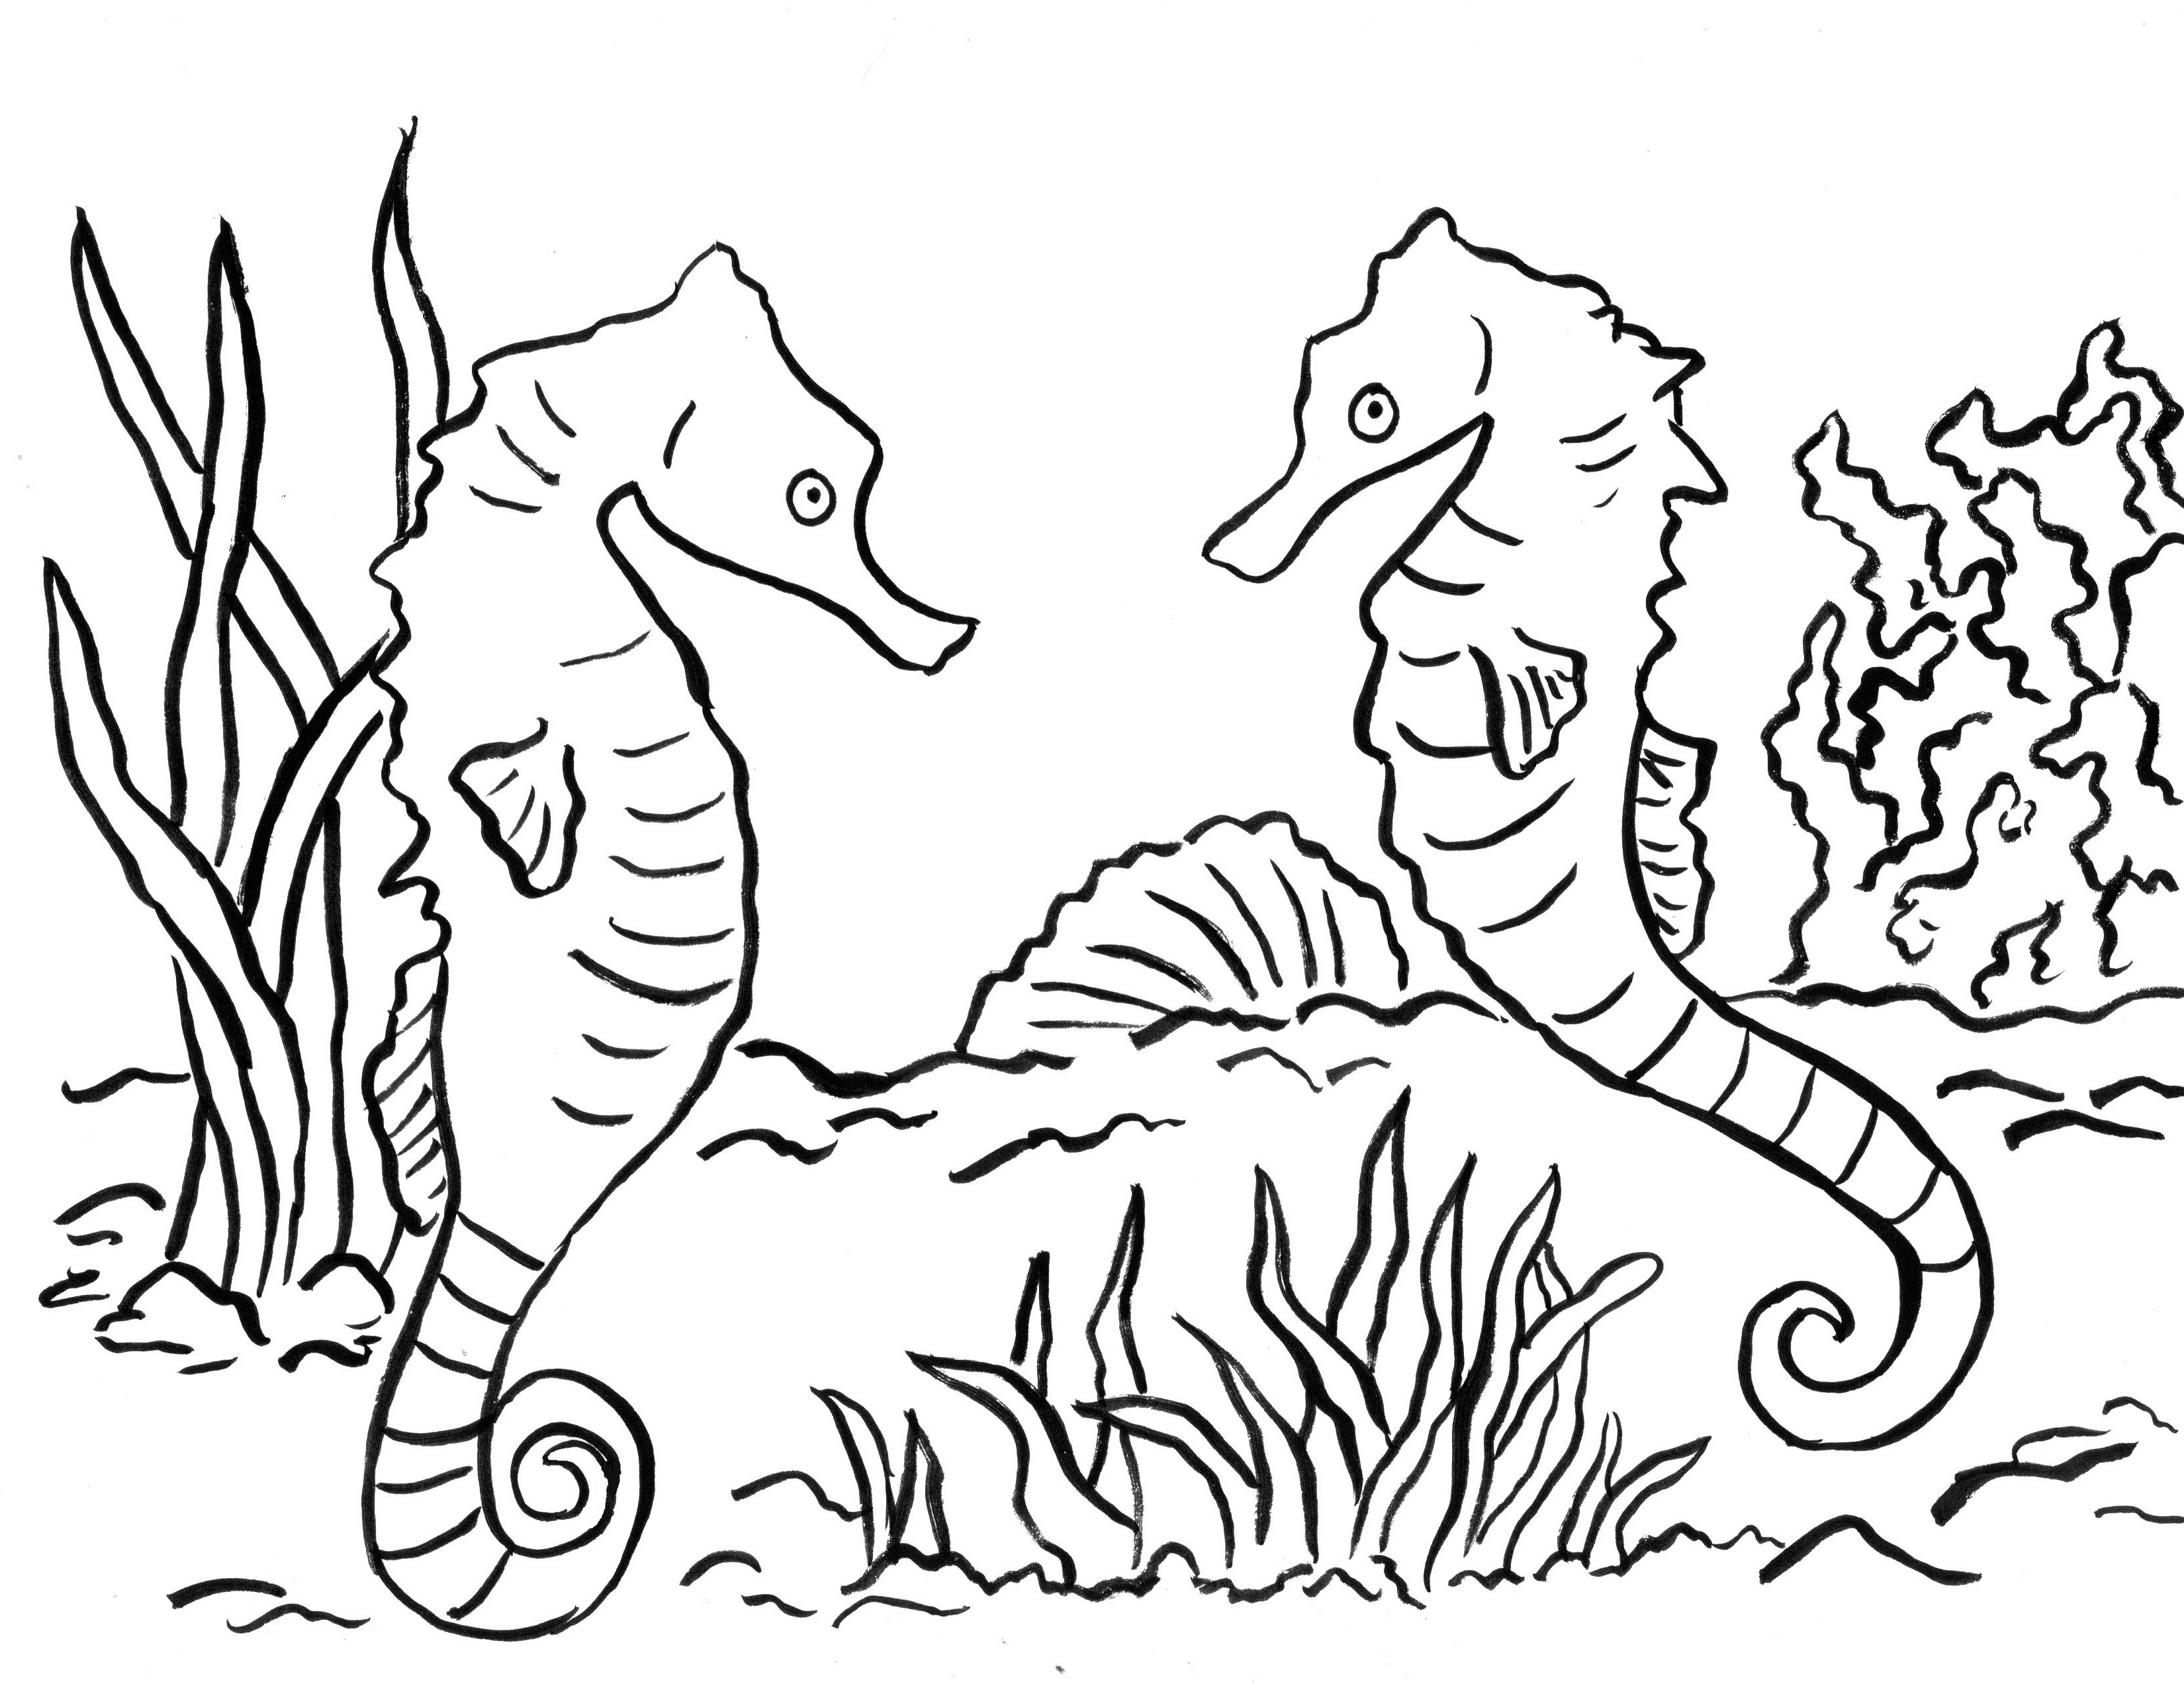 seahorse coloring pages to print cute cartoon seahorse animal ocean coloring page seahorse to print coloring pages